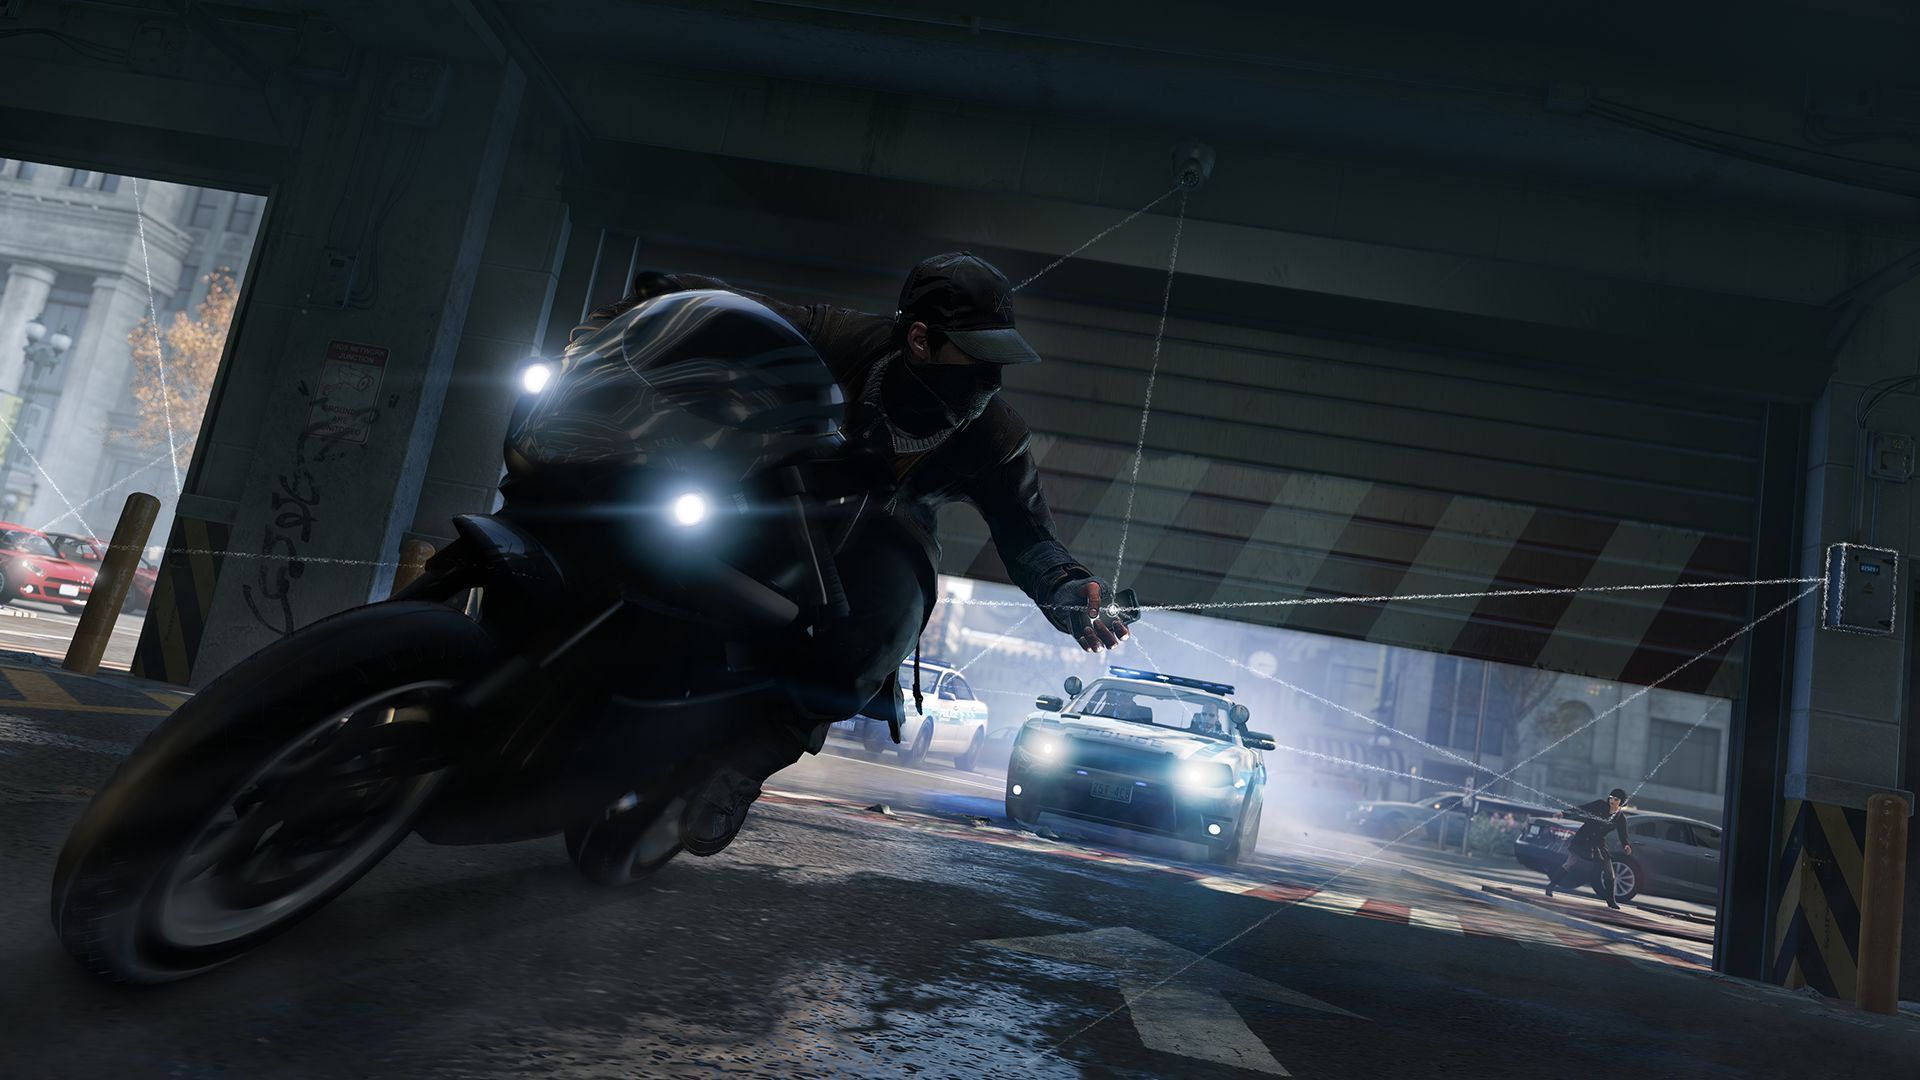 Watch_Dogs (PS3) - 11